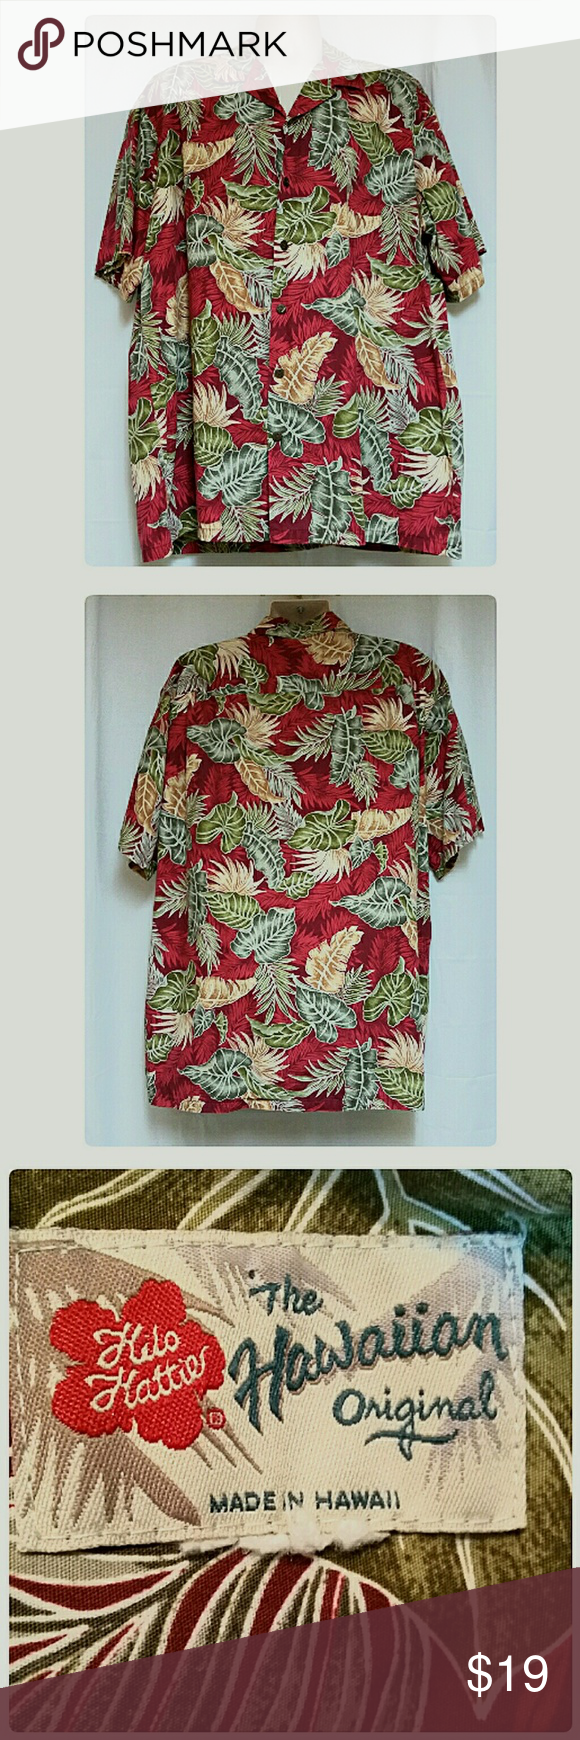 34d3e44b Men's Hilo Hattie Red Hawaiian Shirt Monstera Leaf Item PMTC-0077. This is a